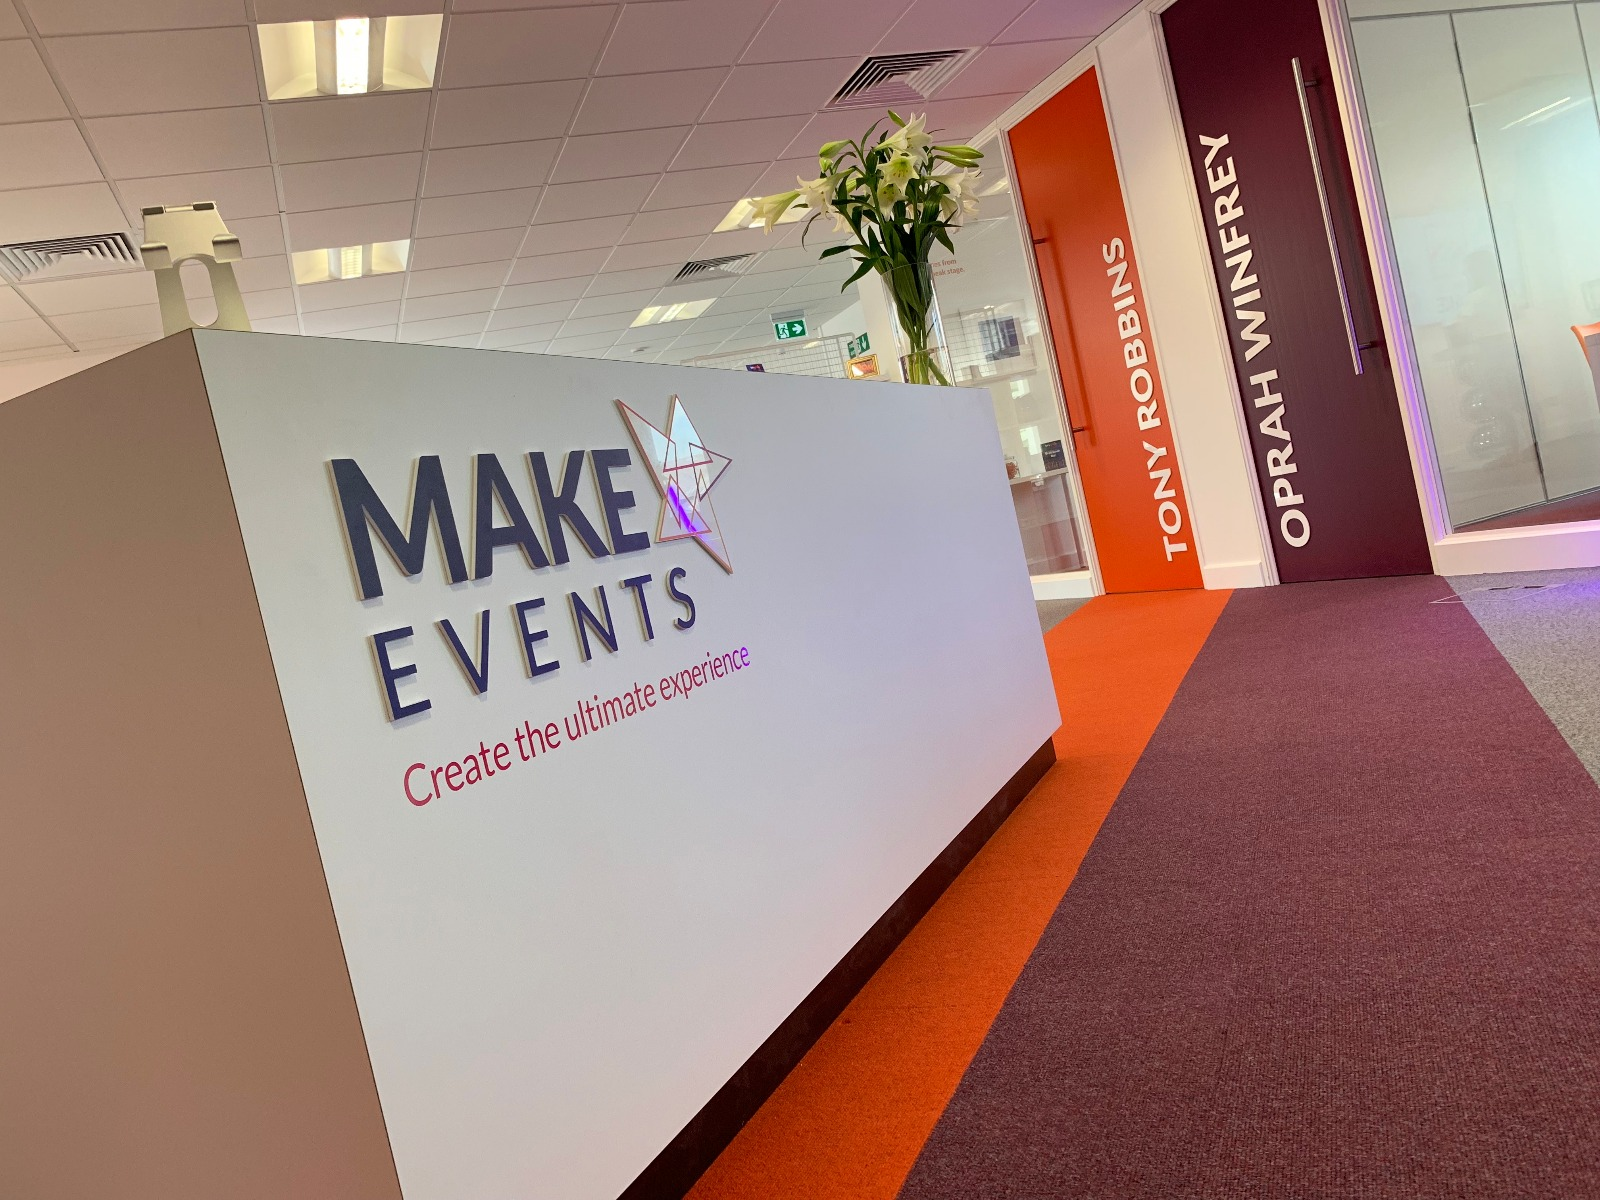 Make Events, Wilmslow.